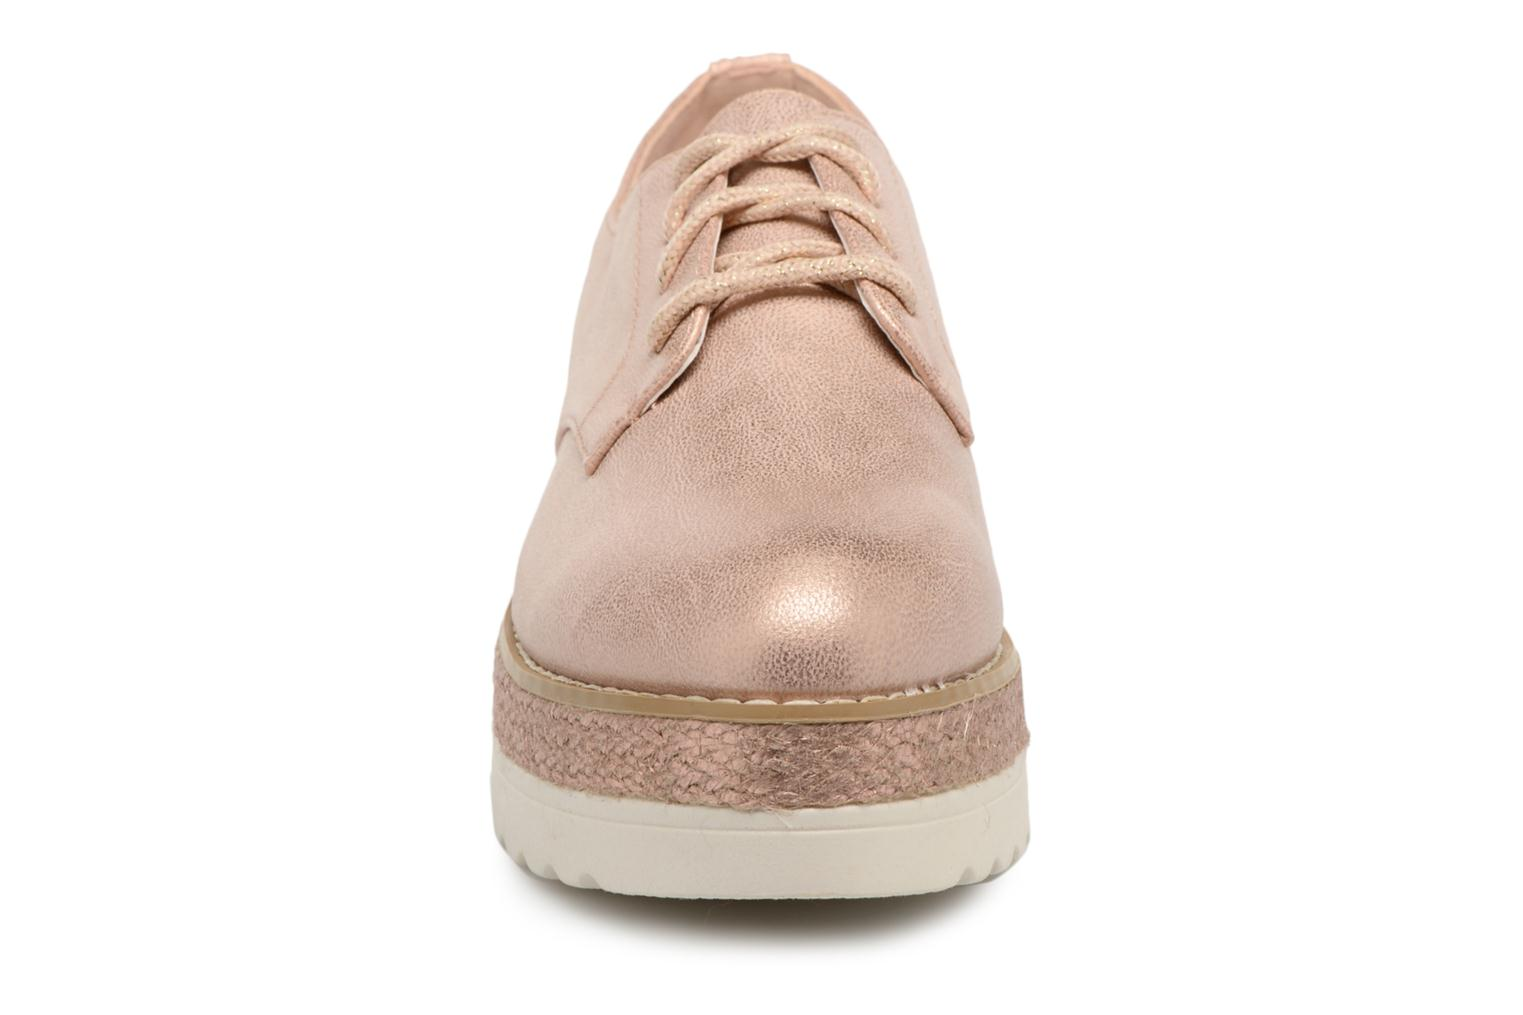 I Thoussey I Love Shoes Pink I Love Love Shoes Pink Thoussey Shoes Pink Thoussey gHCzq